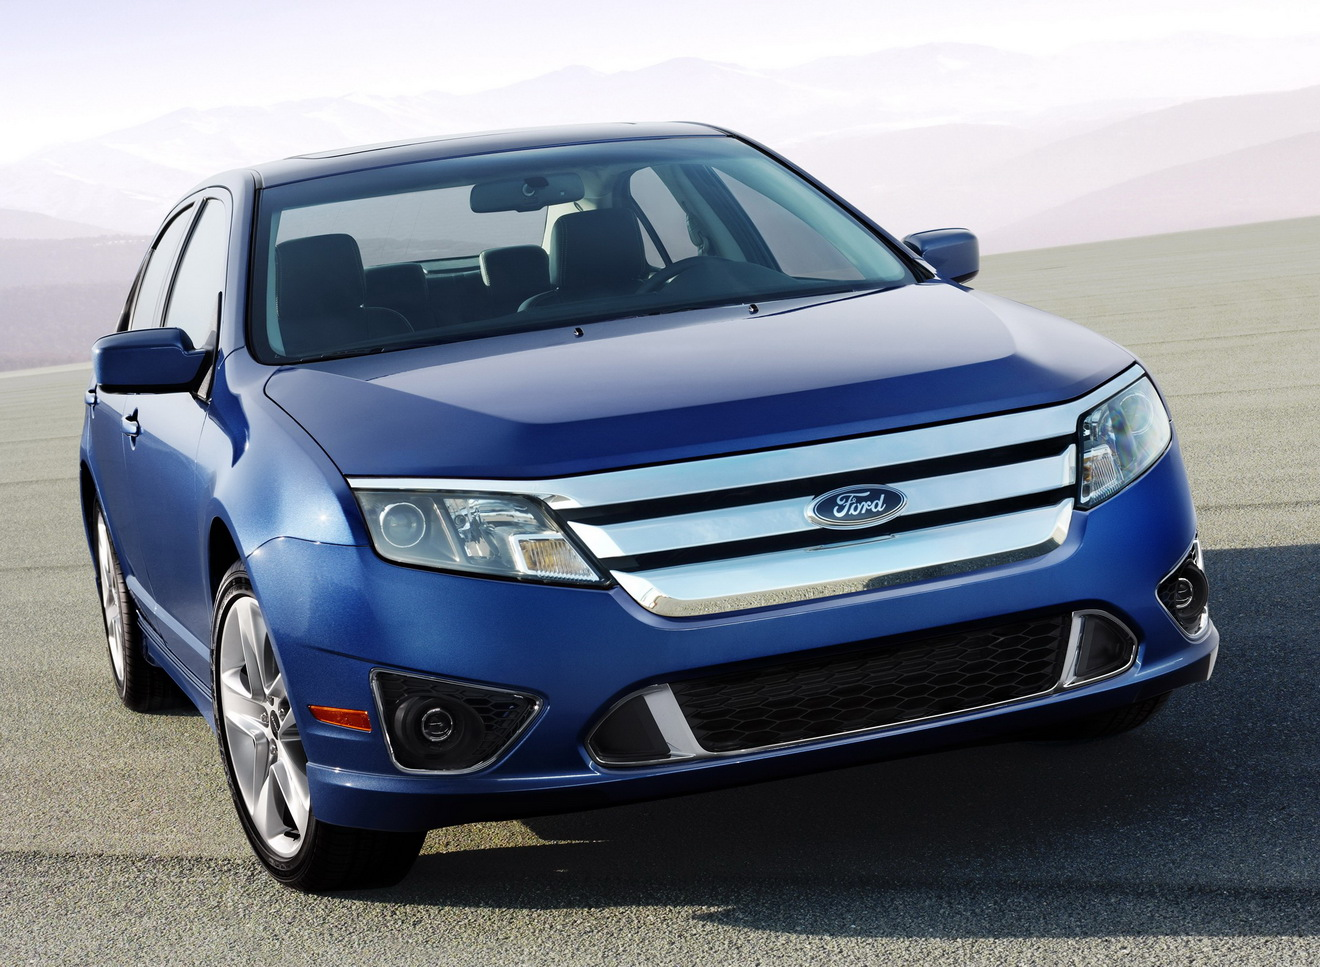 New Ford Fusion Revealed New Design Engines And - New cars 2010